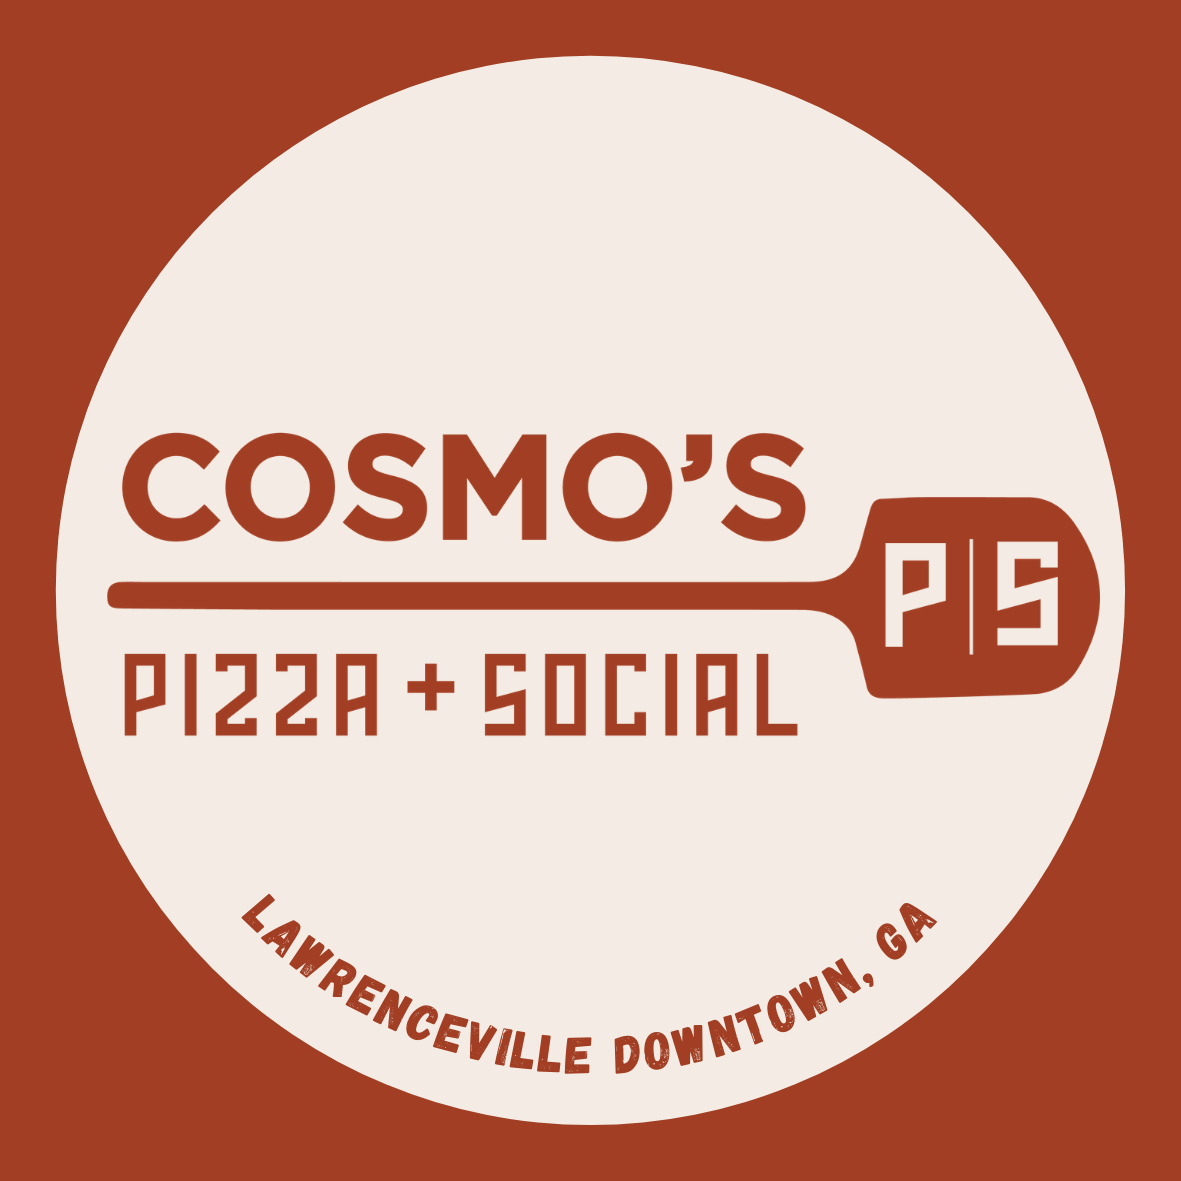 Cosmo's Pizza and Social